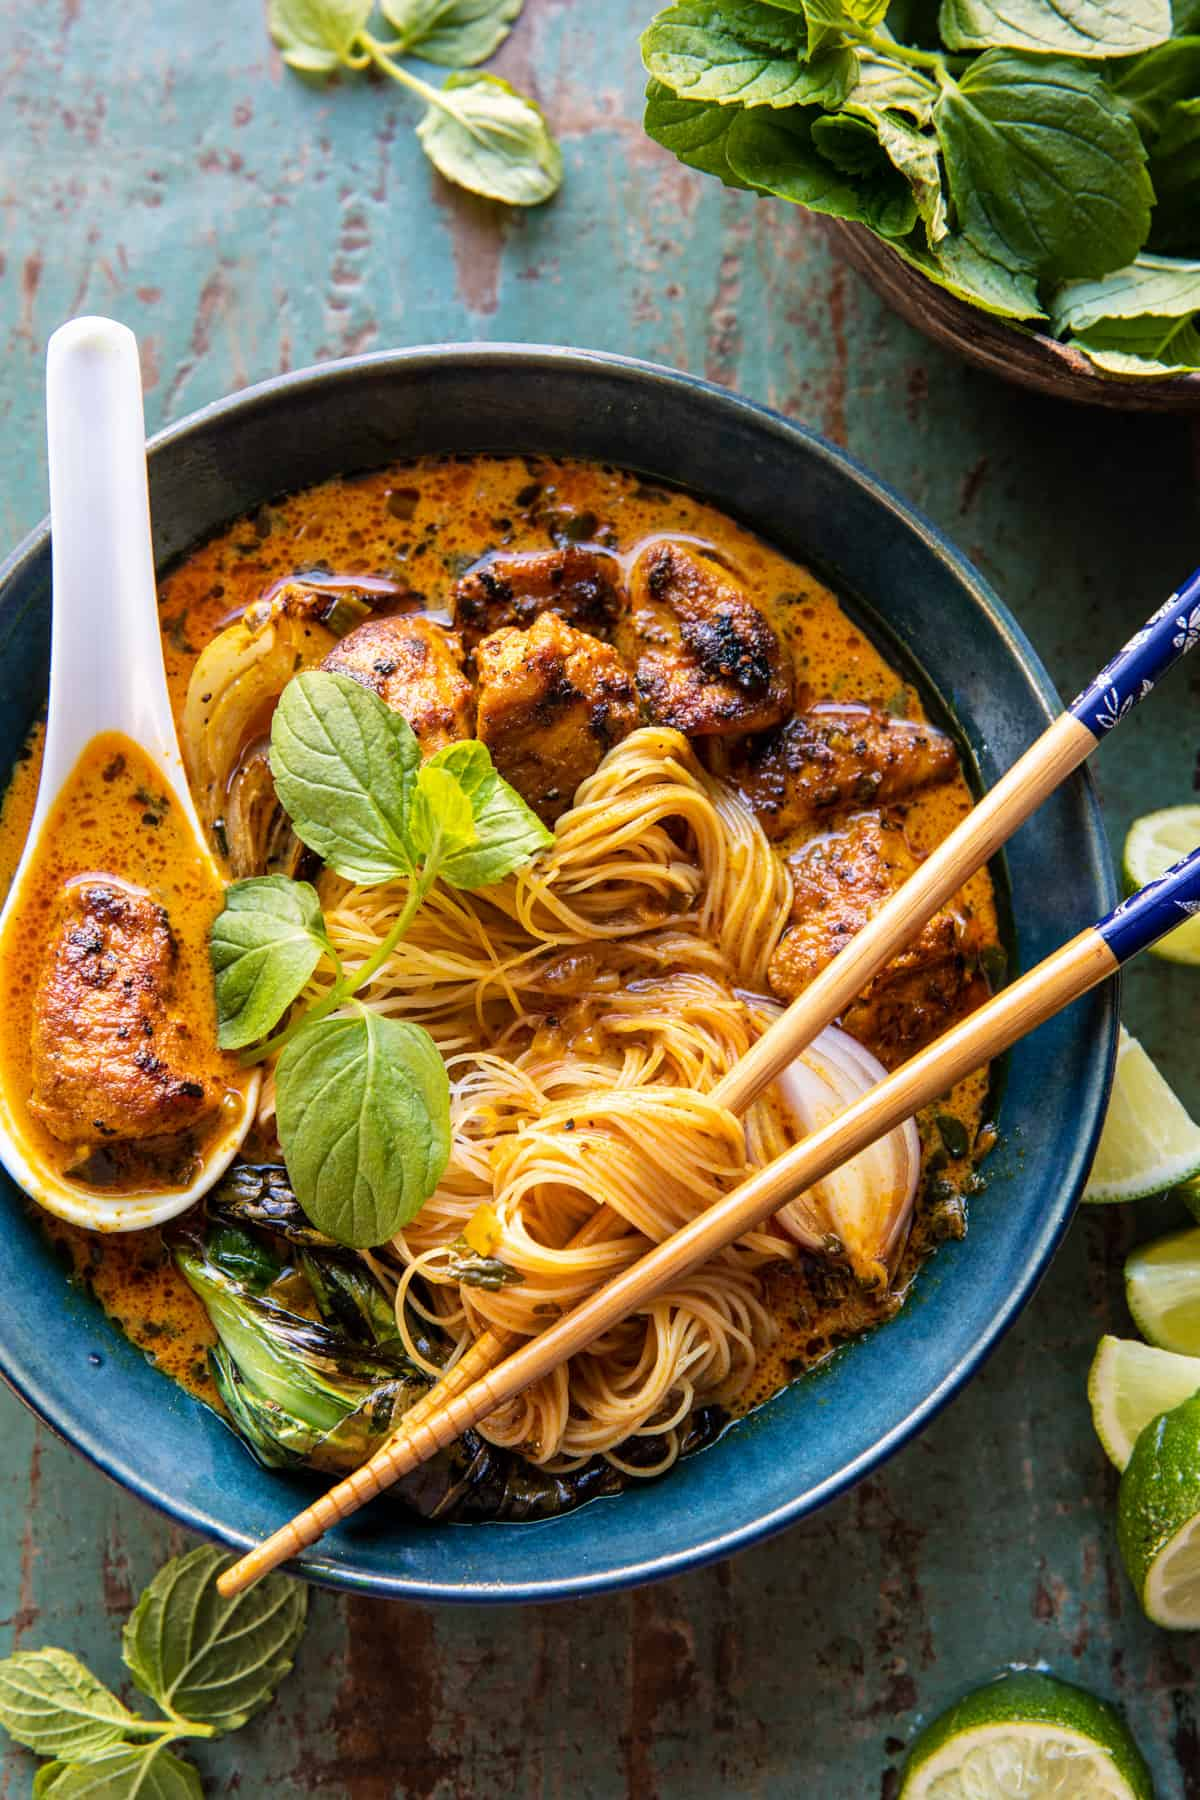 30 Minute Creamy Thai Turmeric Chicken and Noodles.